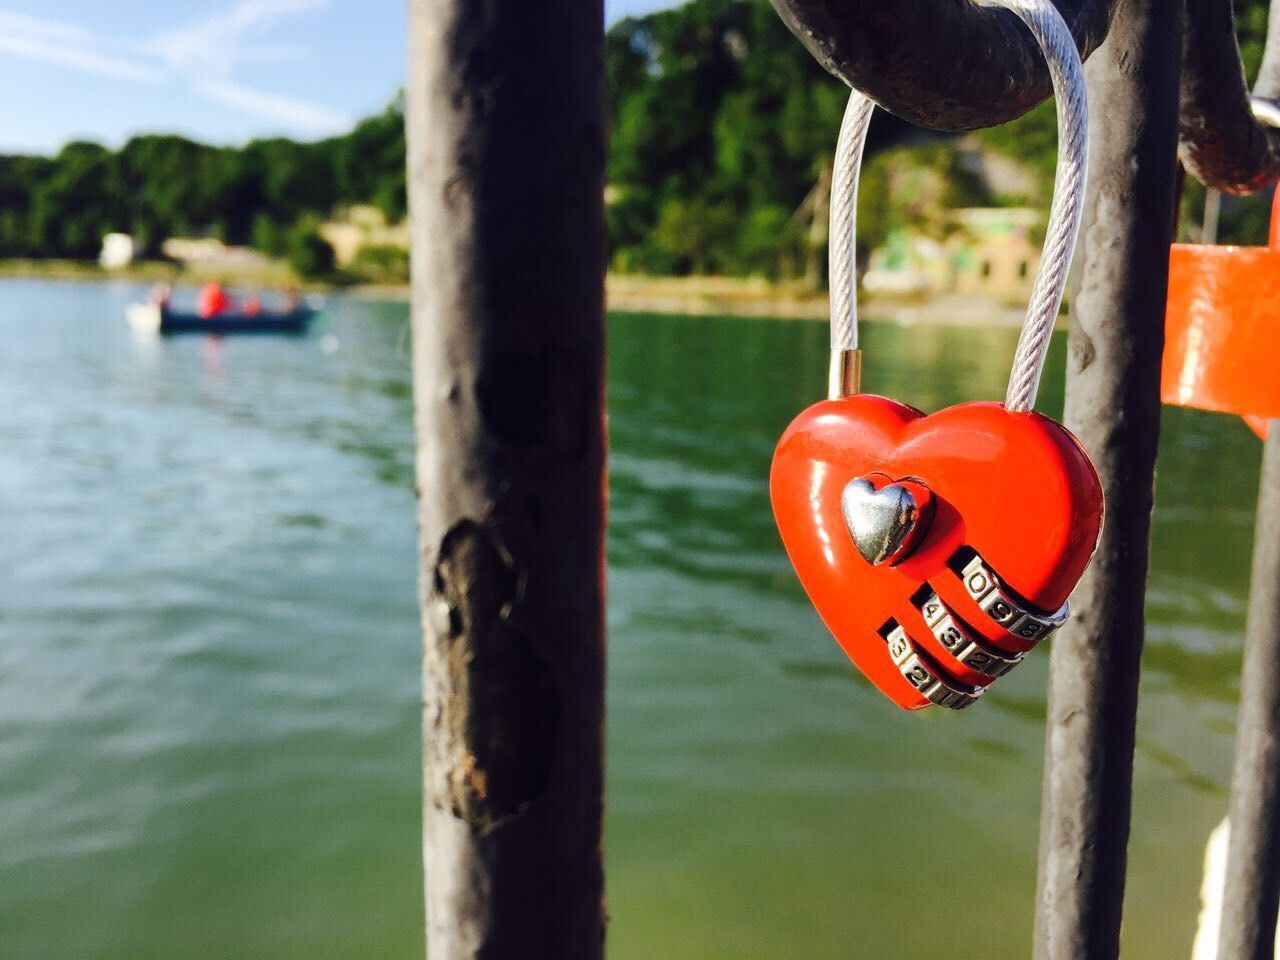 Water Red Focus On Foreground Safety Day Outdoors Hanging No People Nature Close-up Tree Beauty In Nature Lock Heart Shape Live For The Story The Street Photographer - 2017 EyeEm Awards BYOPaper! Place Of Heart